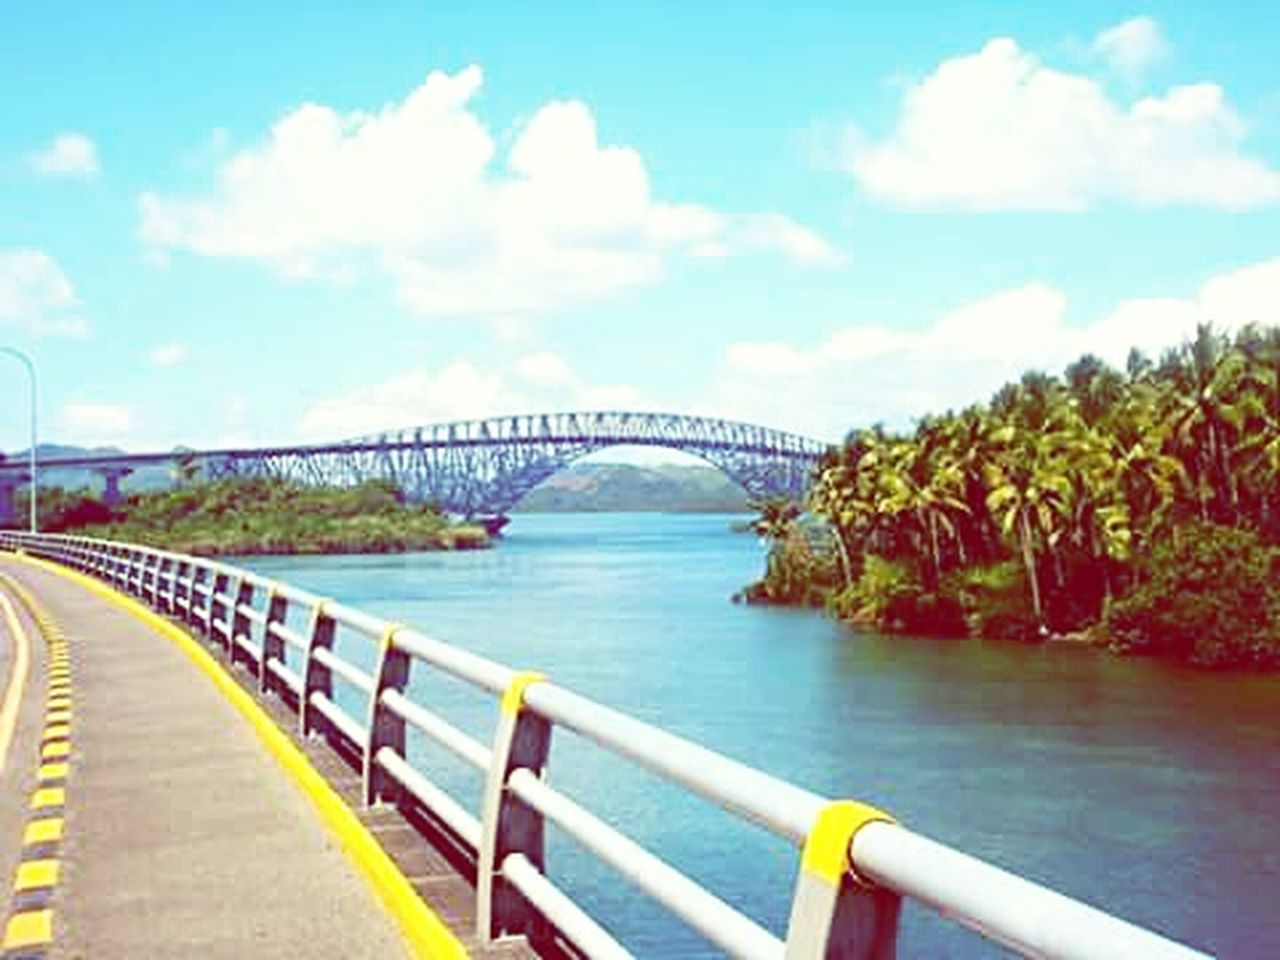 LongestBridge Sanjuanicobridge Samar And Leyte Islands Bluesky Bridge View Tacloban City Cobalt Blue By Motorola